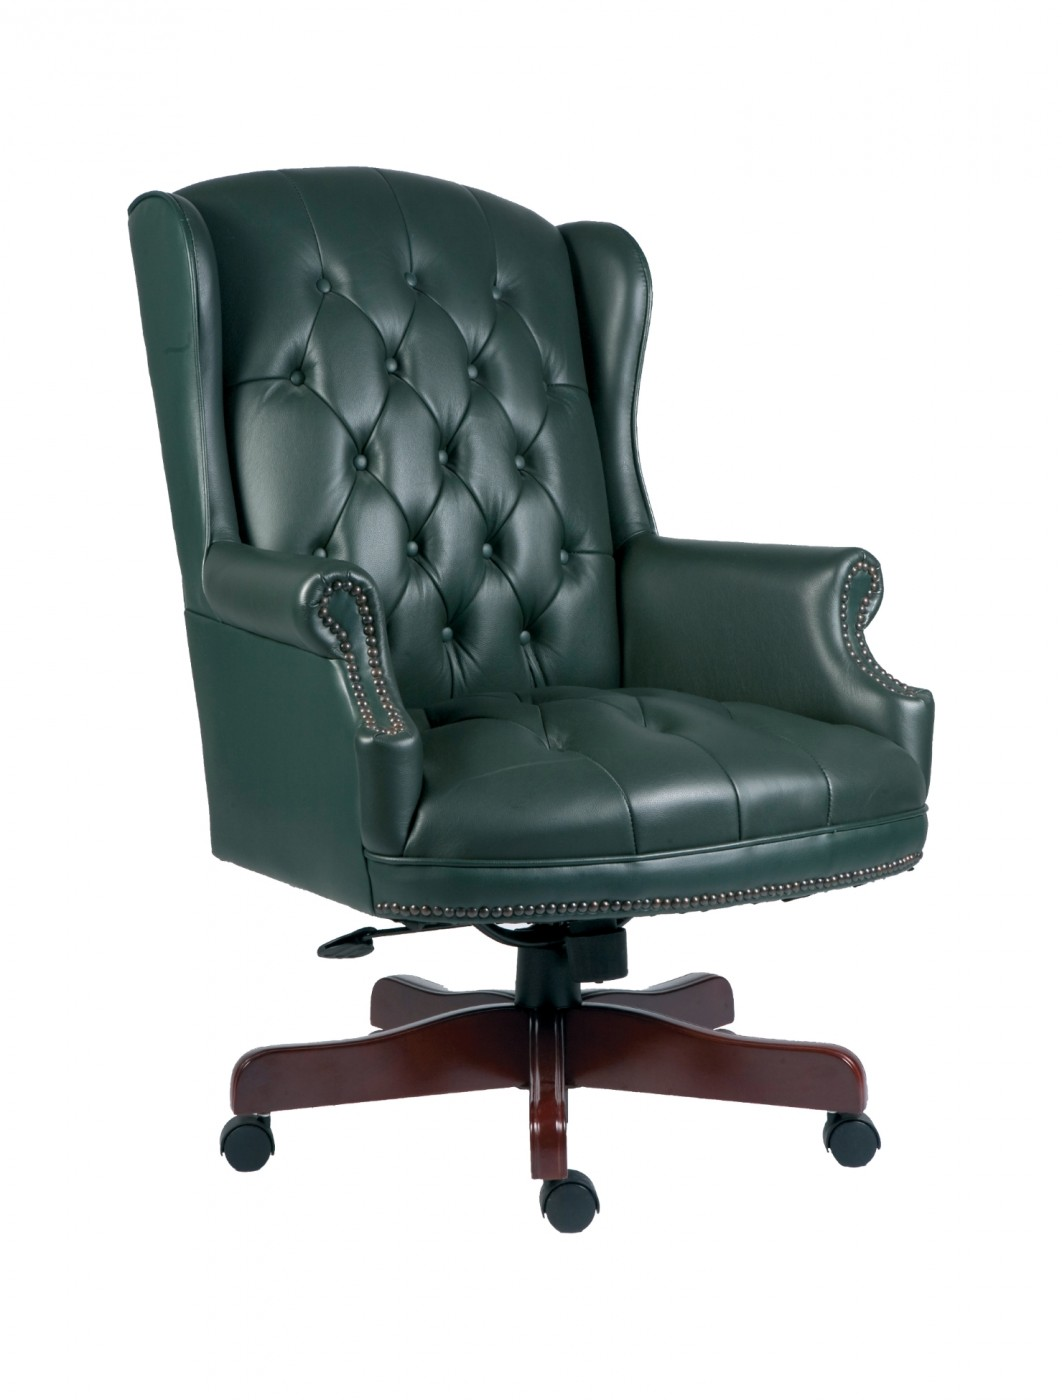 Ordinaire Chairman Traditional Executive Chair B800 In Green   Enlarged View